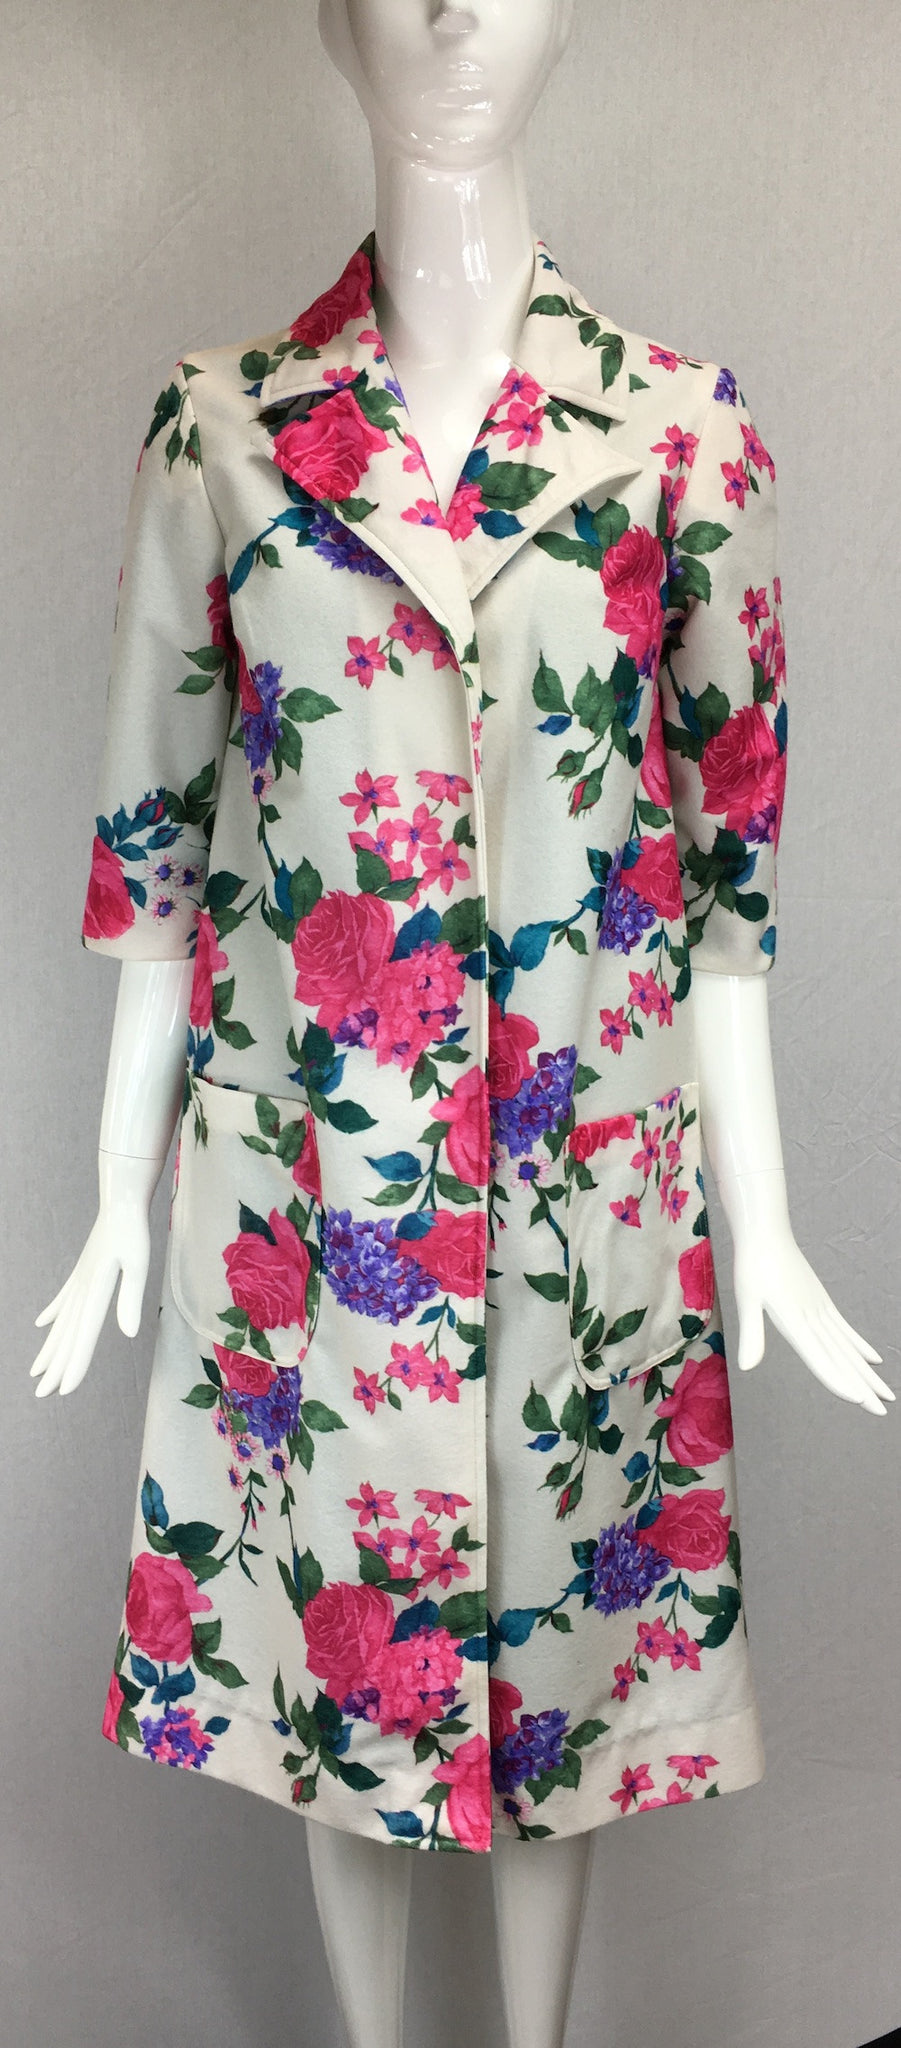 Janet Deleuse Designer Flower Coat, SOLD